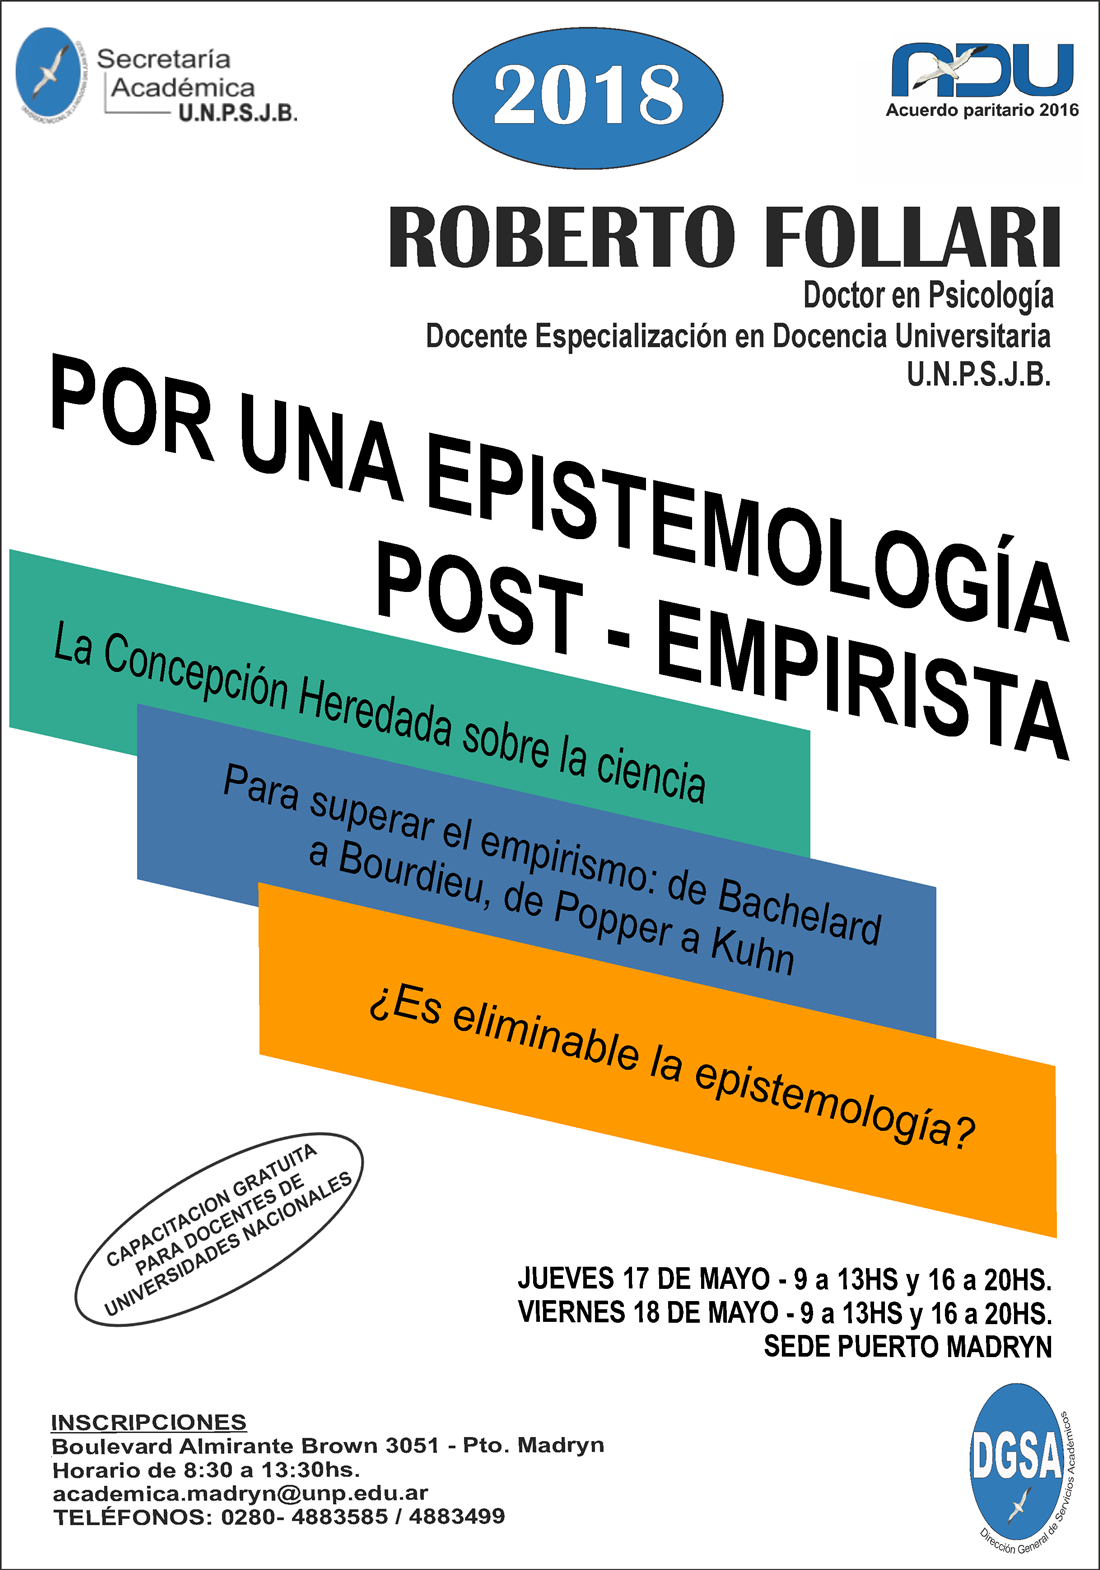 Por una epistemologia post-empirista